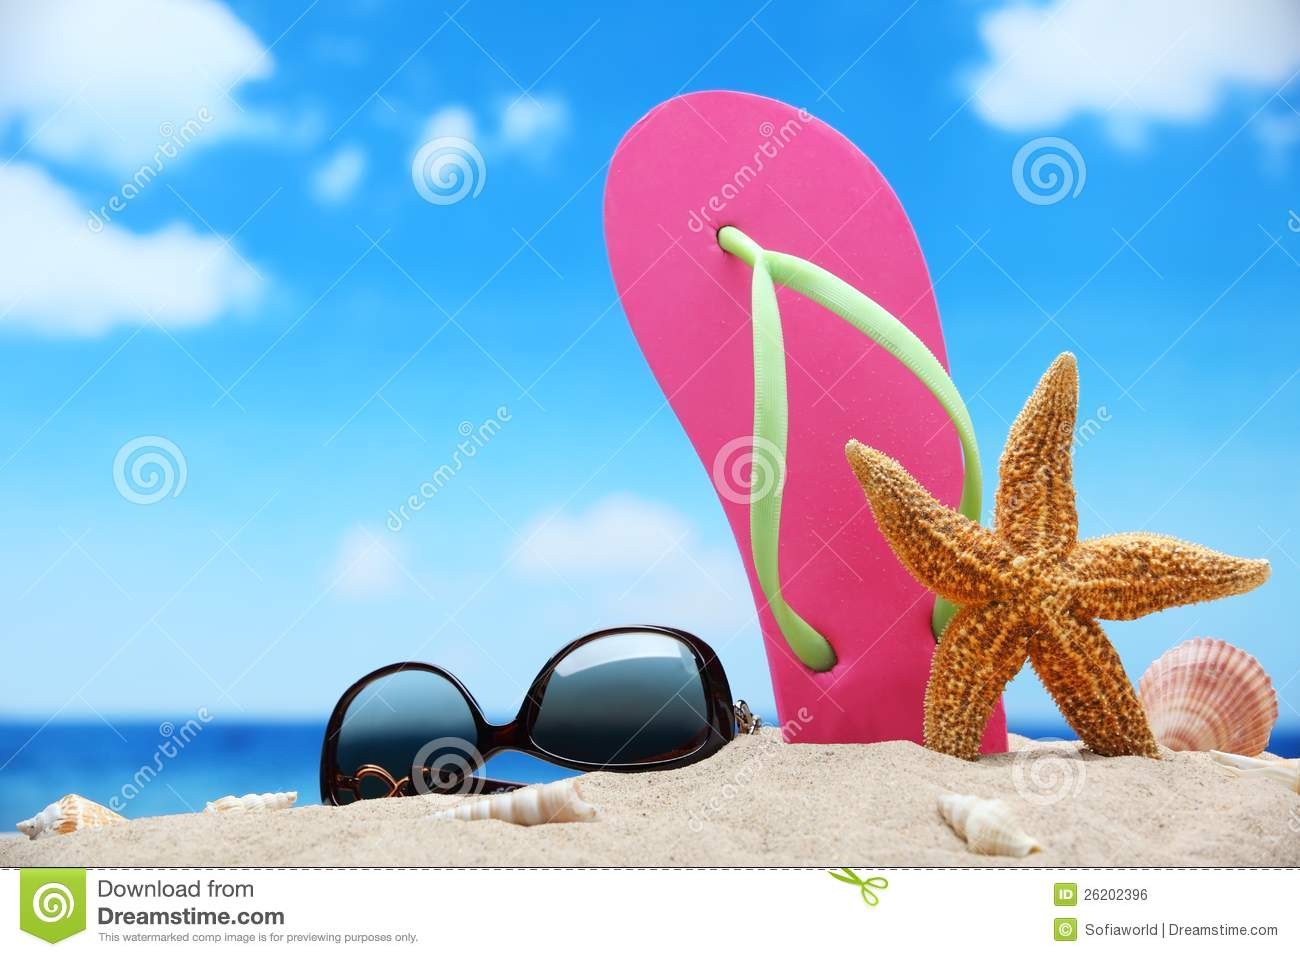 e08a19fd8829 Beach vacation concept stock photo. Image of resort, summer - 26202396